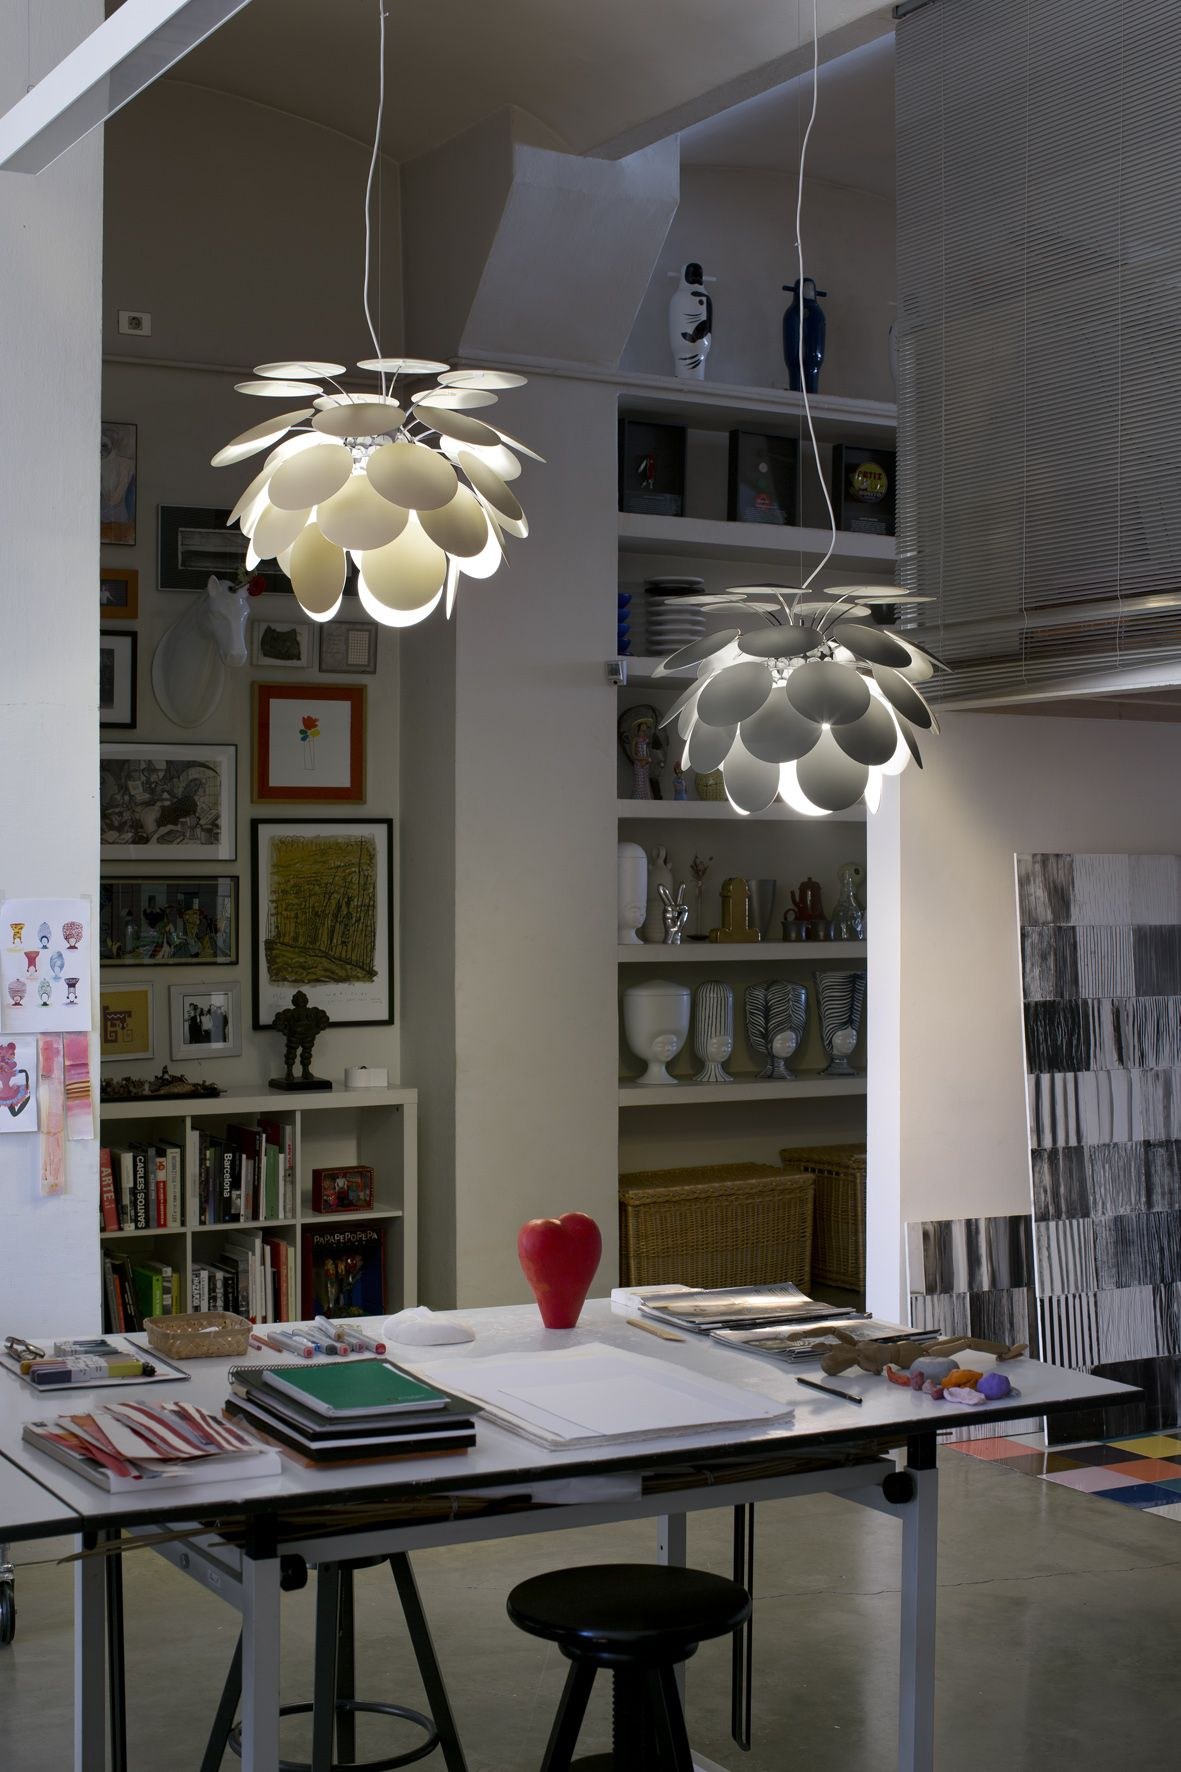 sourceclipgoo com decoration home living interior famous room board from designers lamp design ceiling and false gypsum lights amazing of in office creative